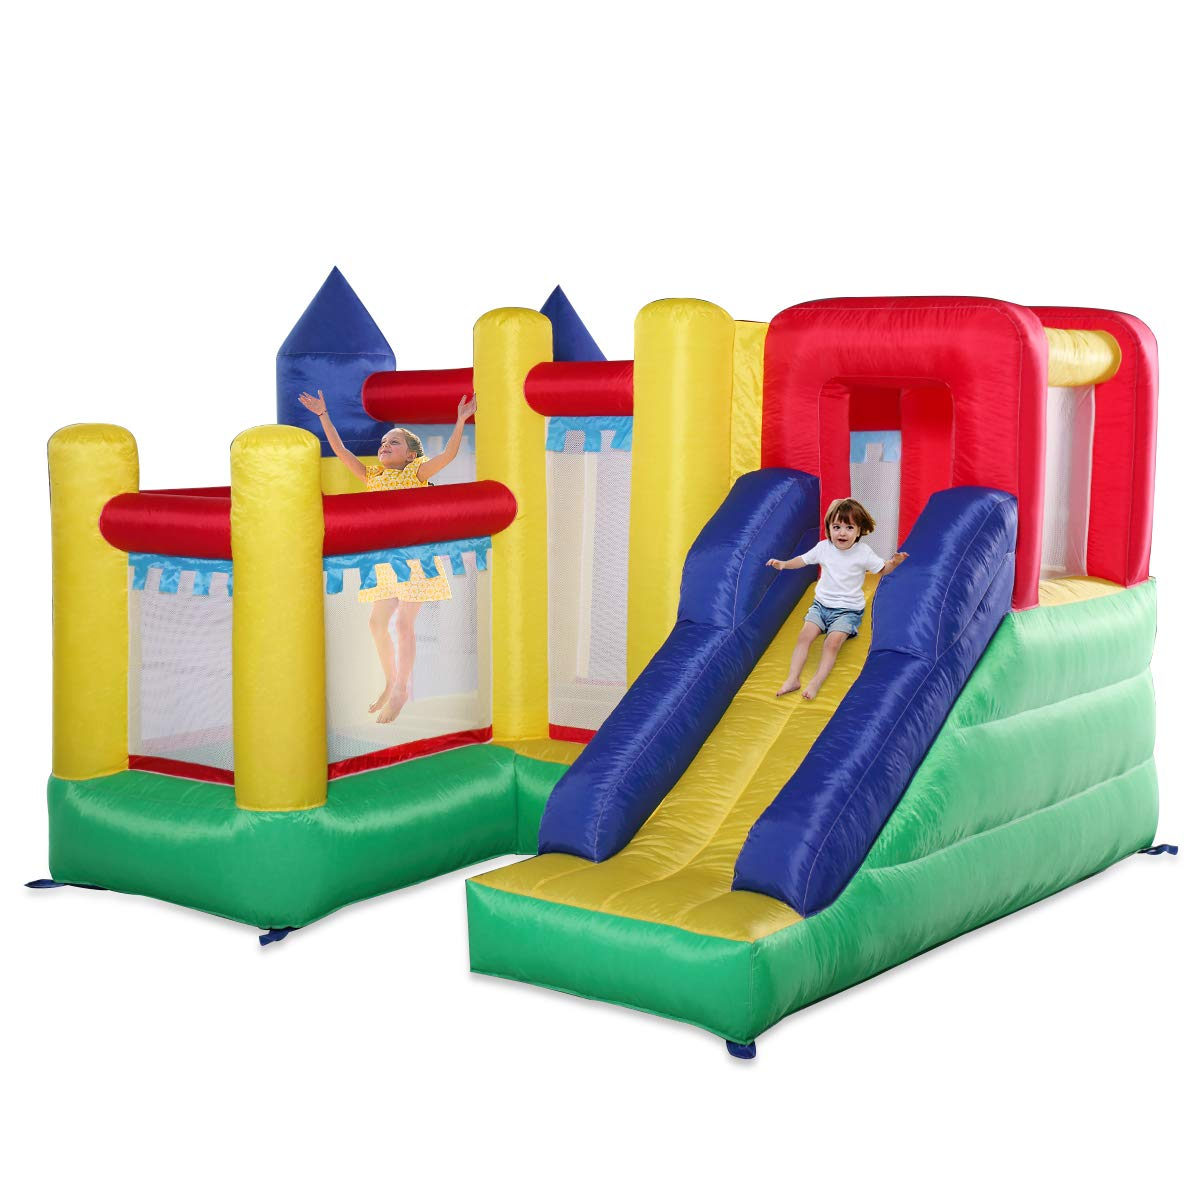 Kids Inflatable Bounce House Castle Jumper Slide Moonwalk Without Blower by BWM.Co (Image #9)